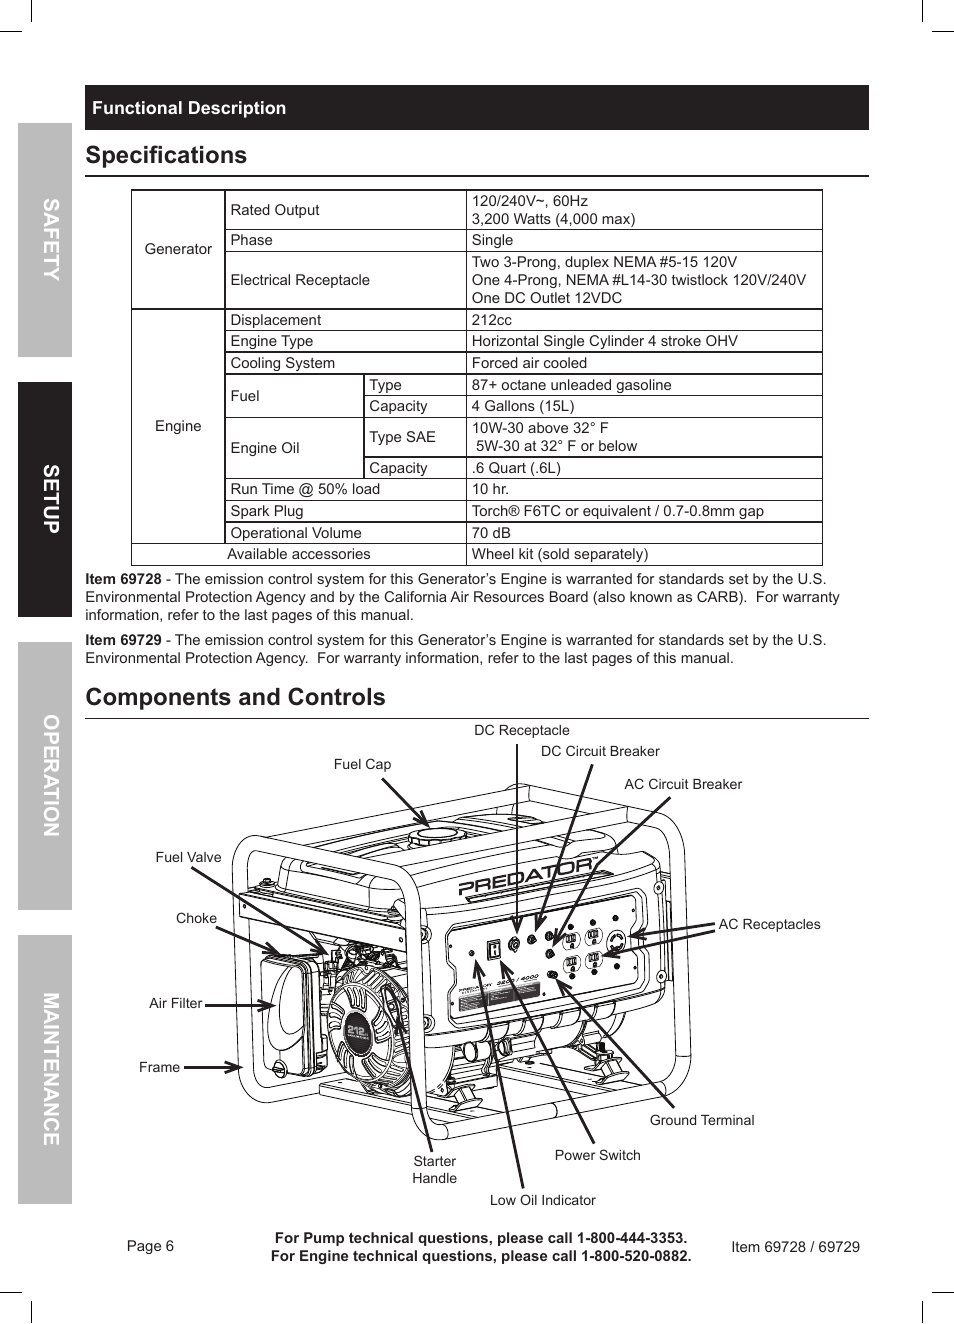 medium resolution of specifications components and controls harbor freight tools predator generator 69728 user manual page 6 24